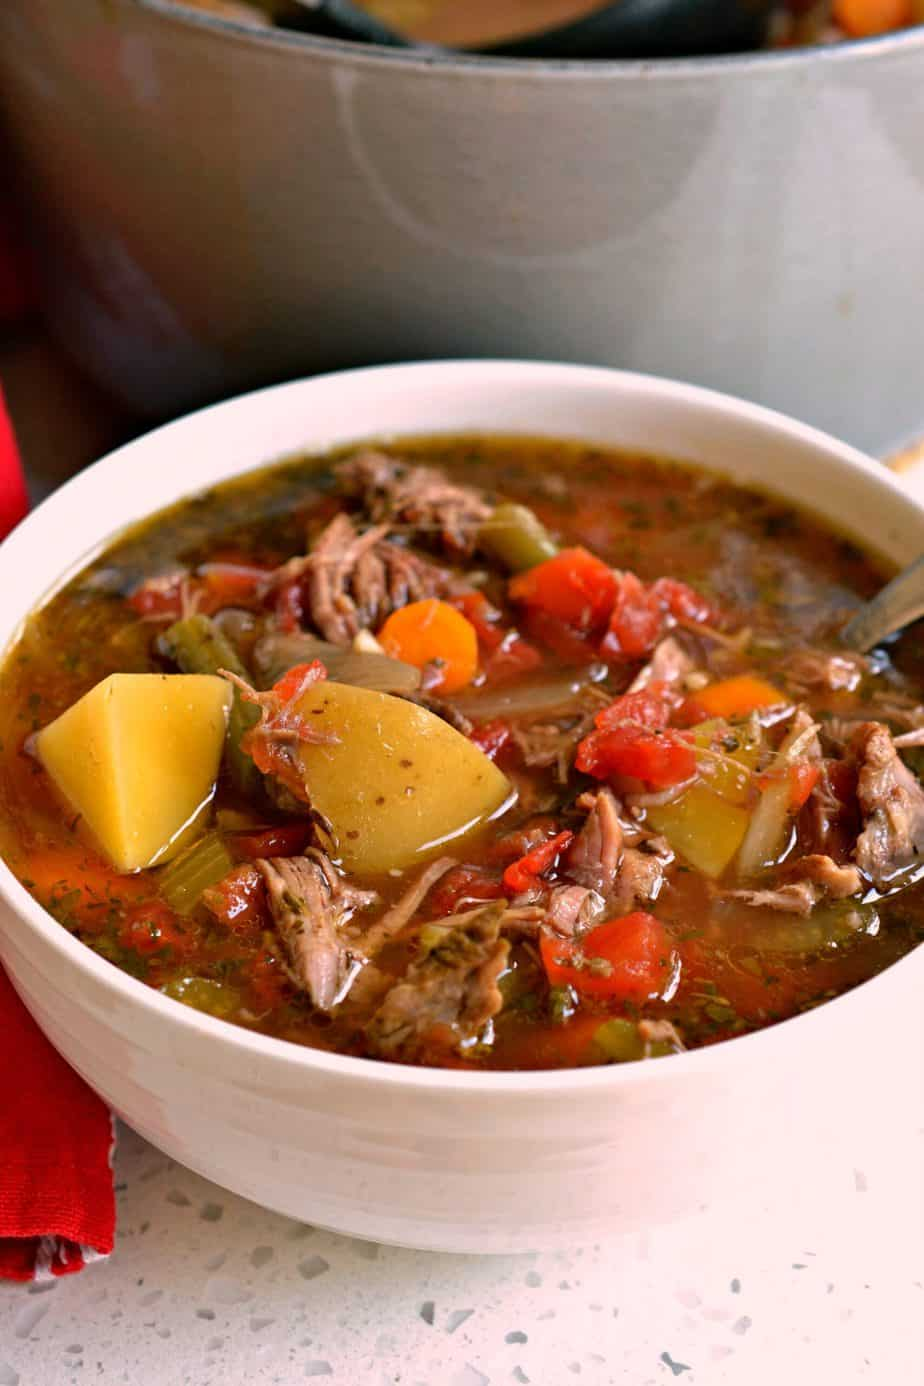 Beef Vegetable Soup is made with tender slow simmered chuck roast with celery, carrots, potatoes, tomatoes and green beans.